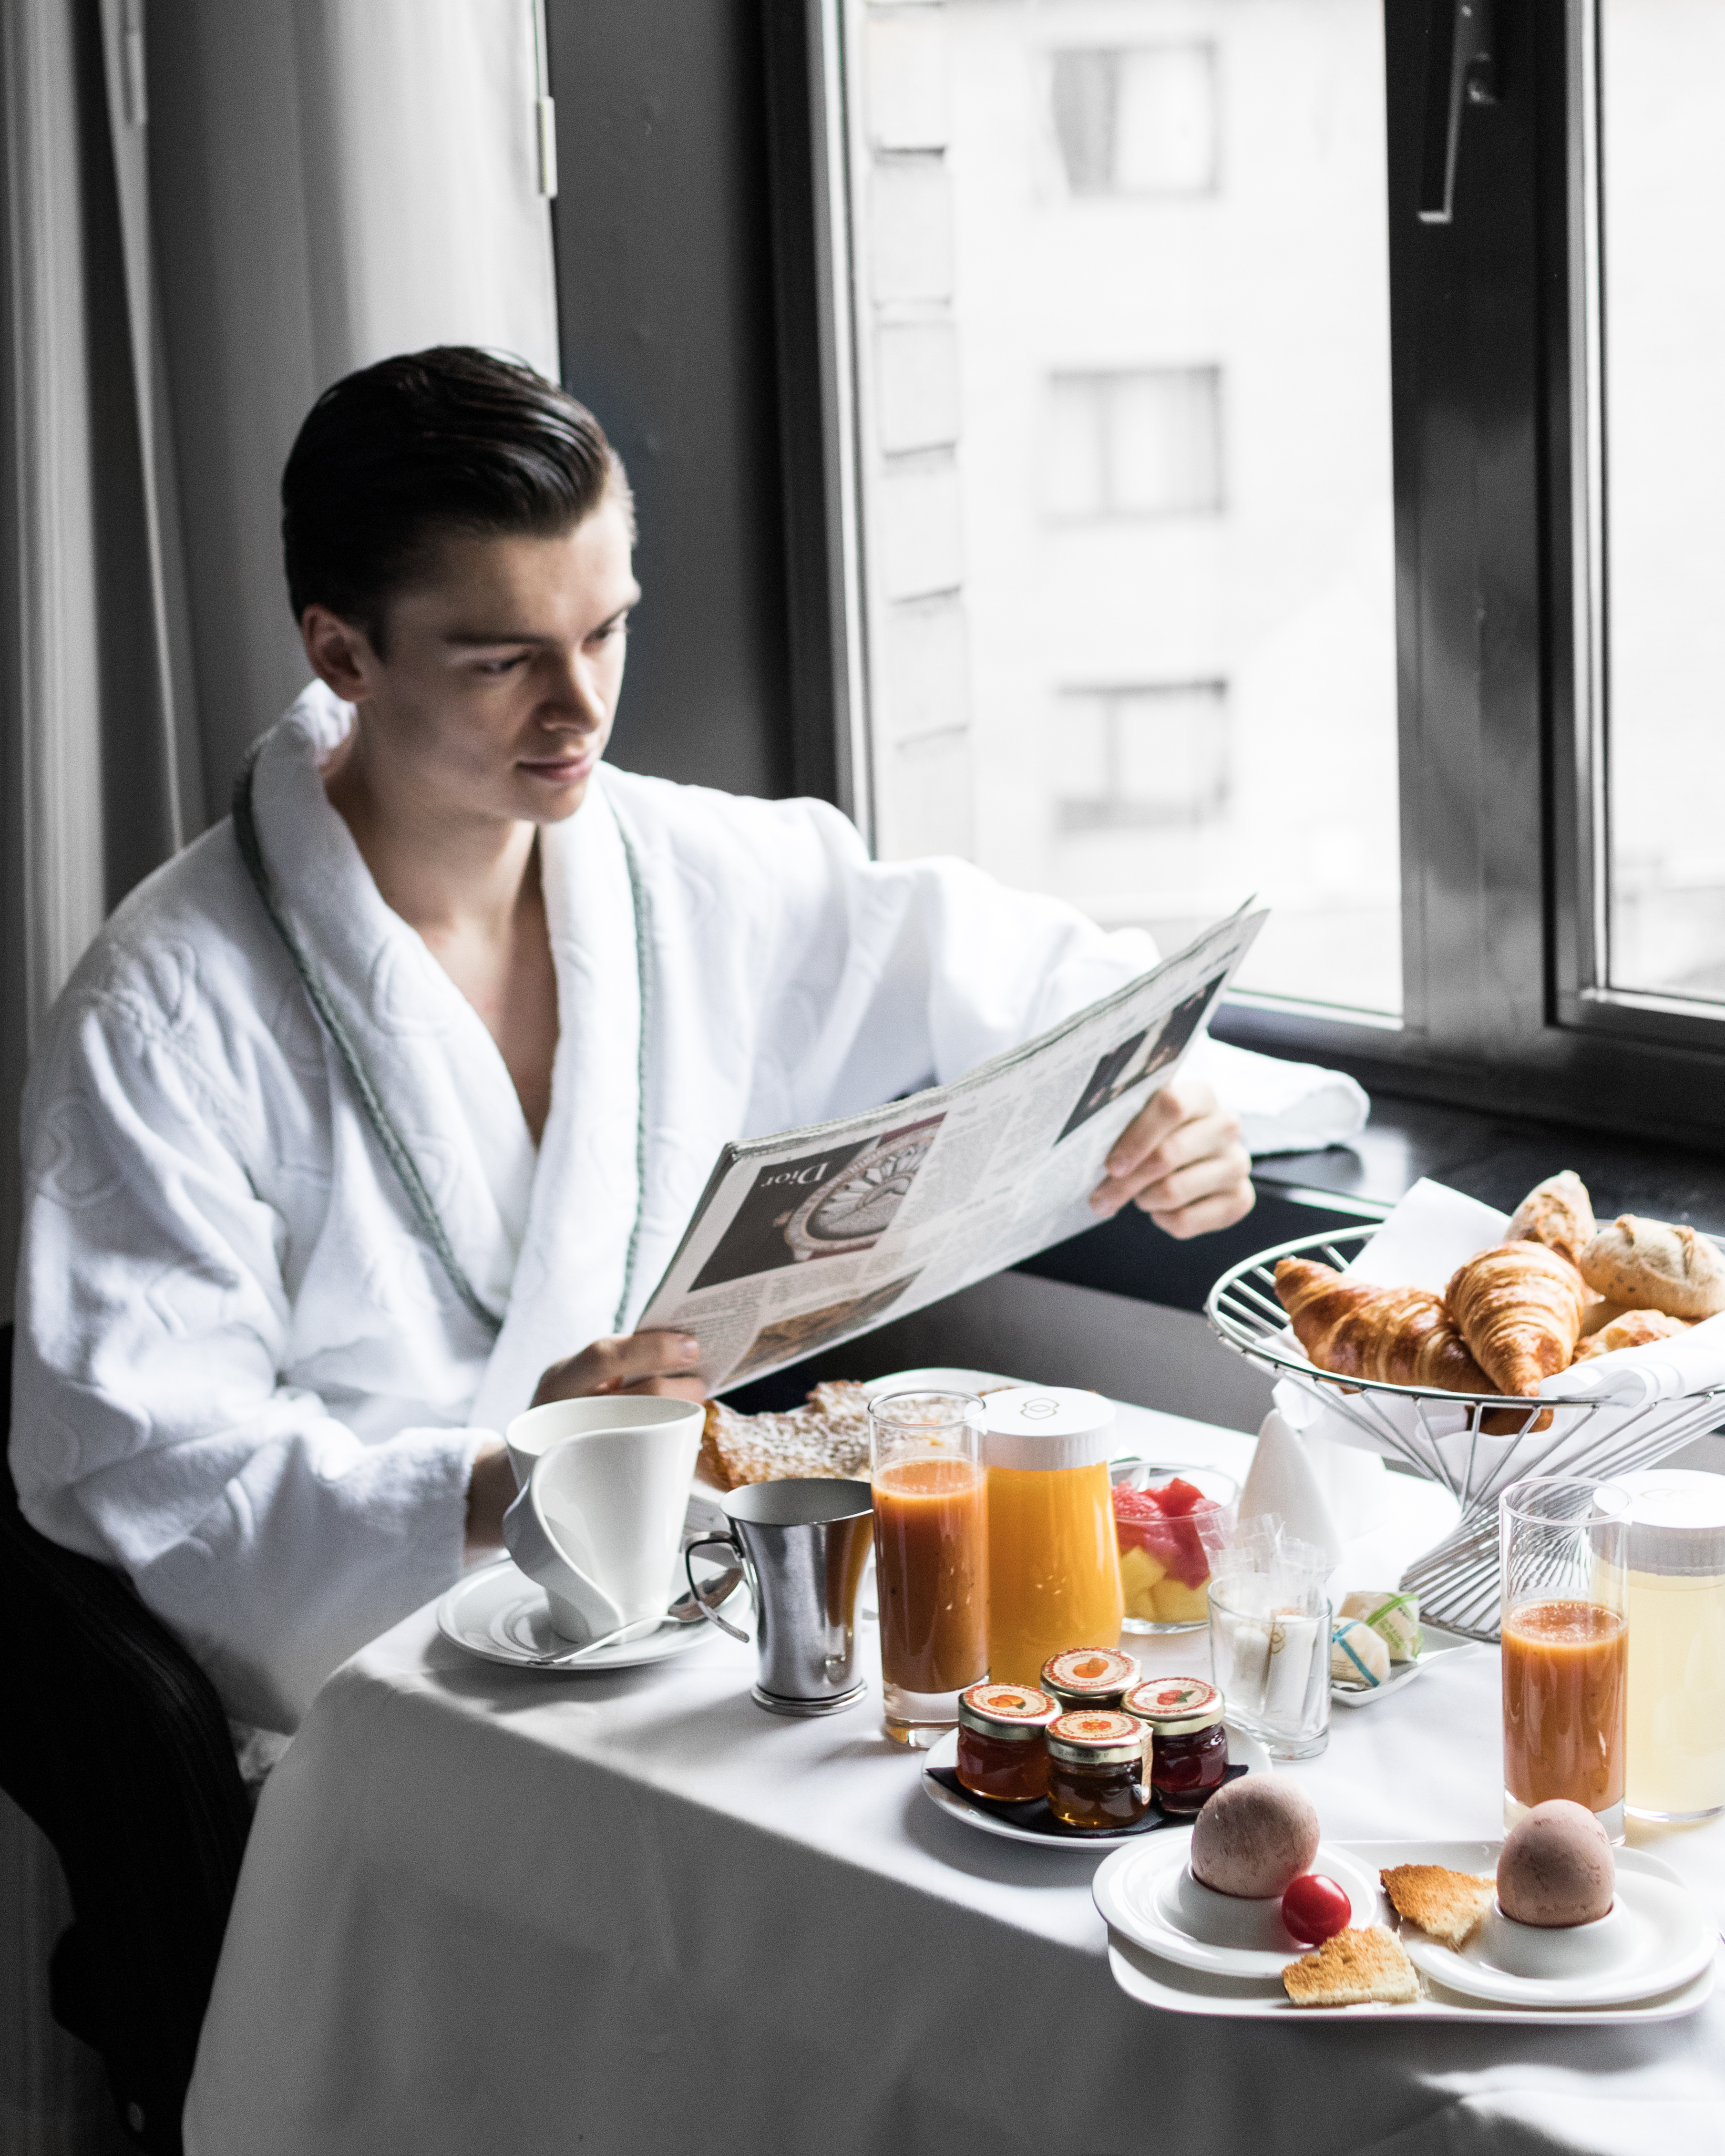 Mathias le fevre - sofitel le louise brussels breakfast room service gentleman luxury hotel